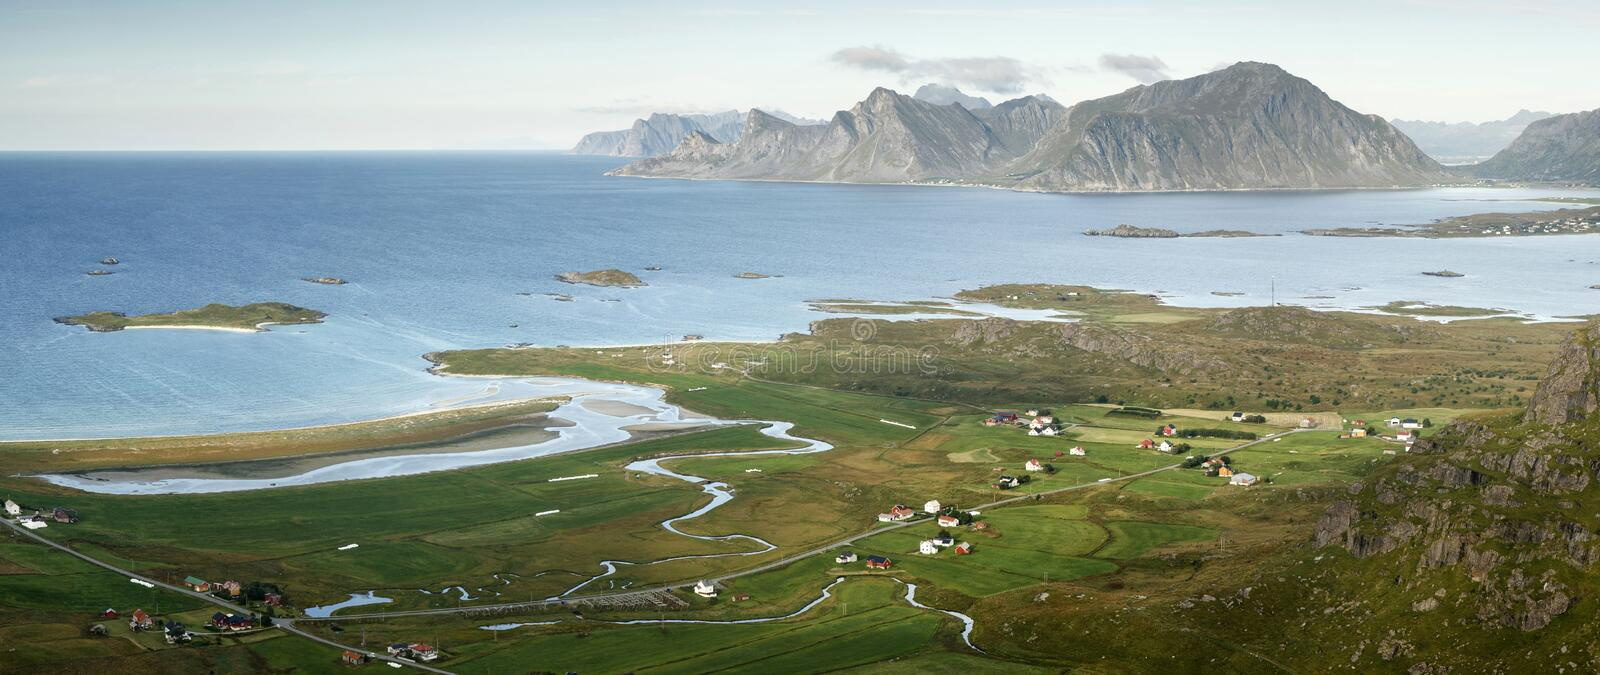 Arctic landscape- Yttersand, Lofoten Islands, Norway. Arctic landscape- Yttersand town and beach, Lofoten Islands, Norway stock photo